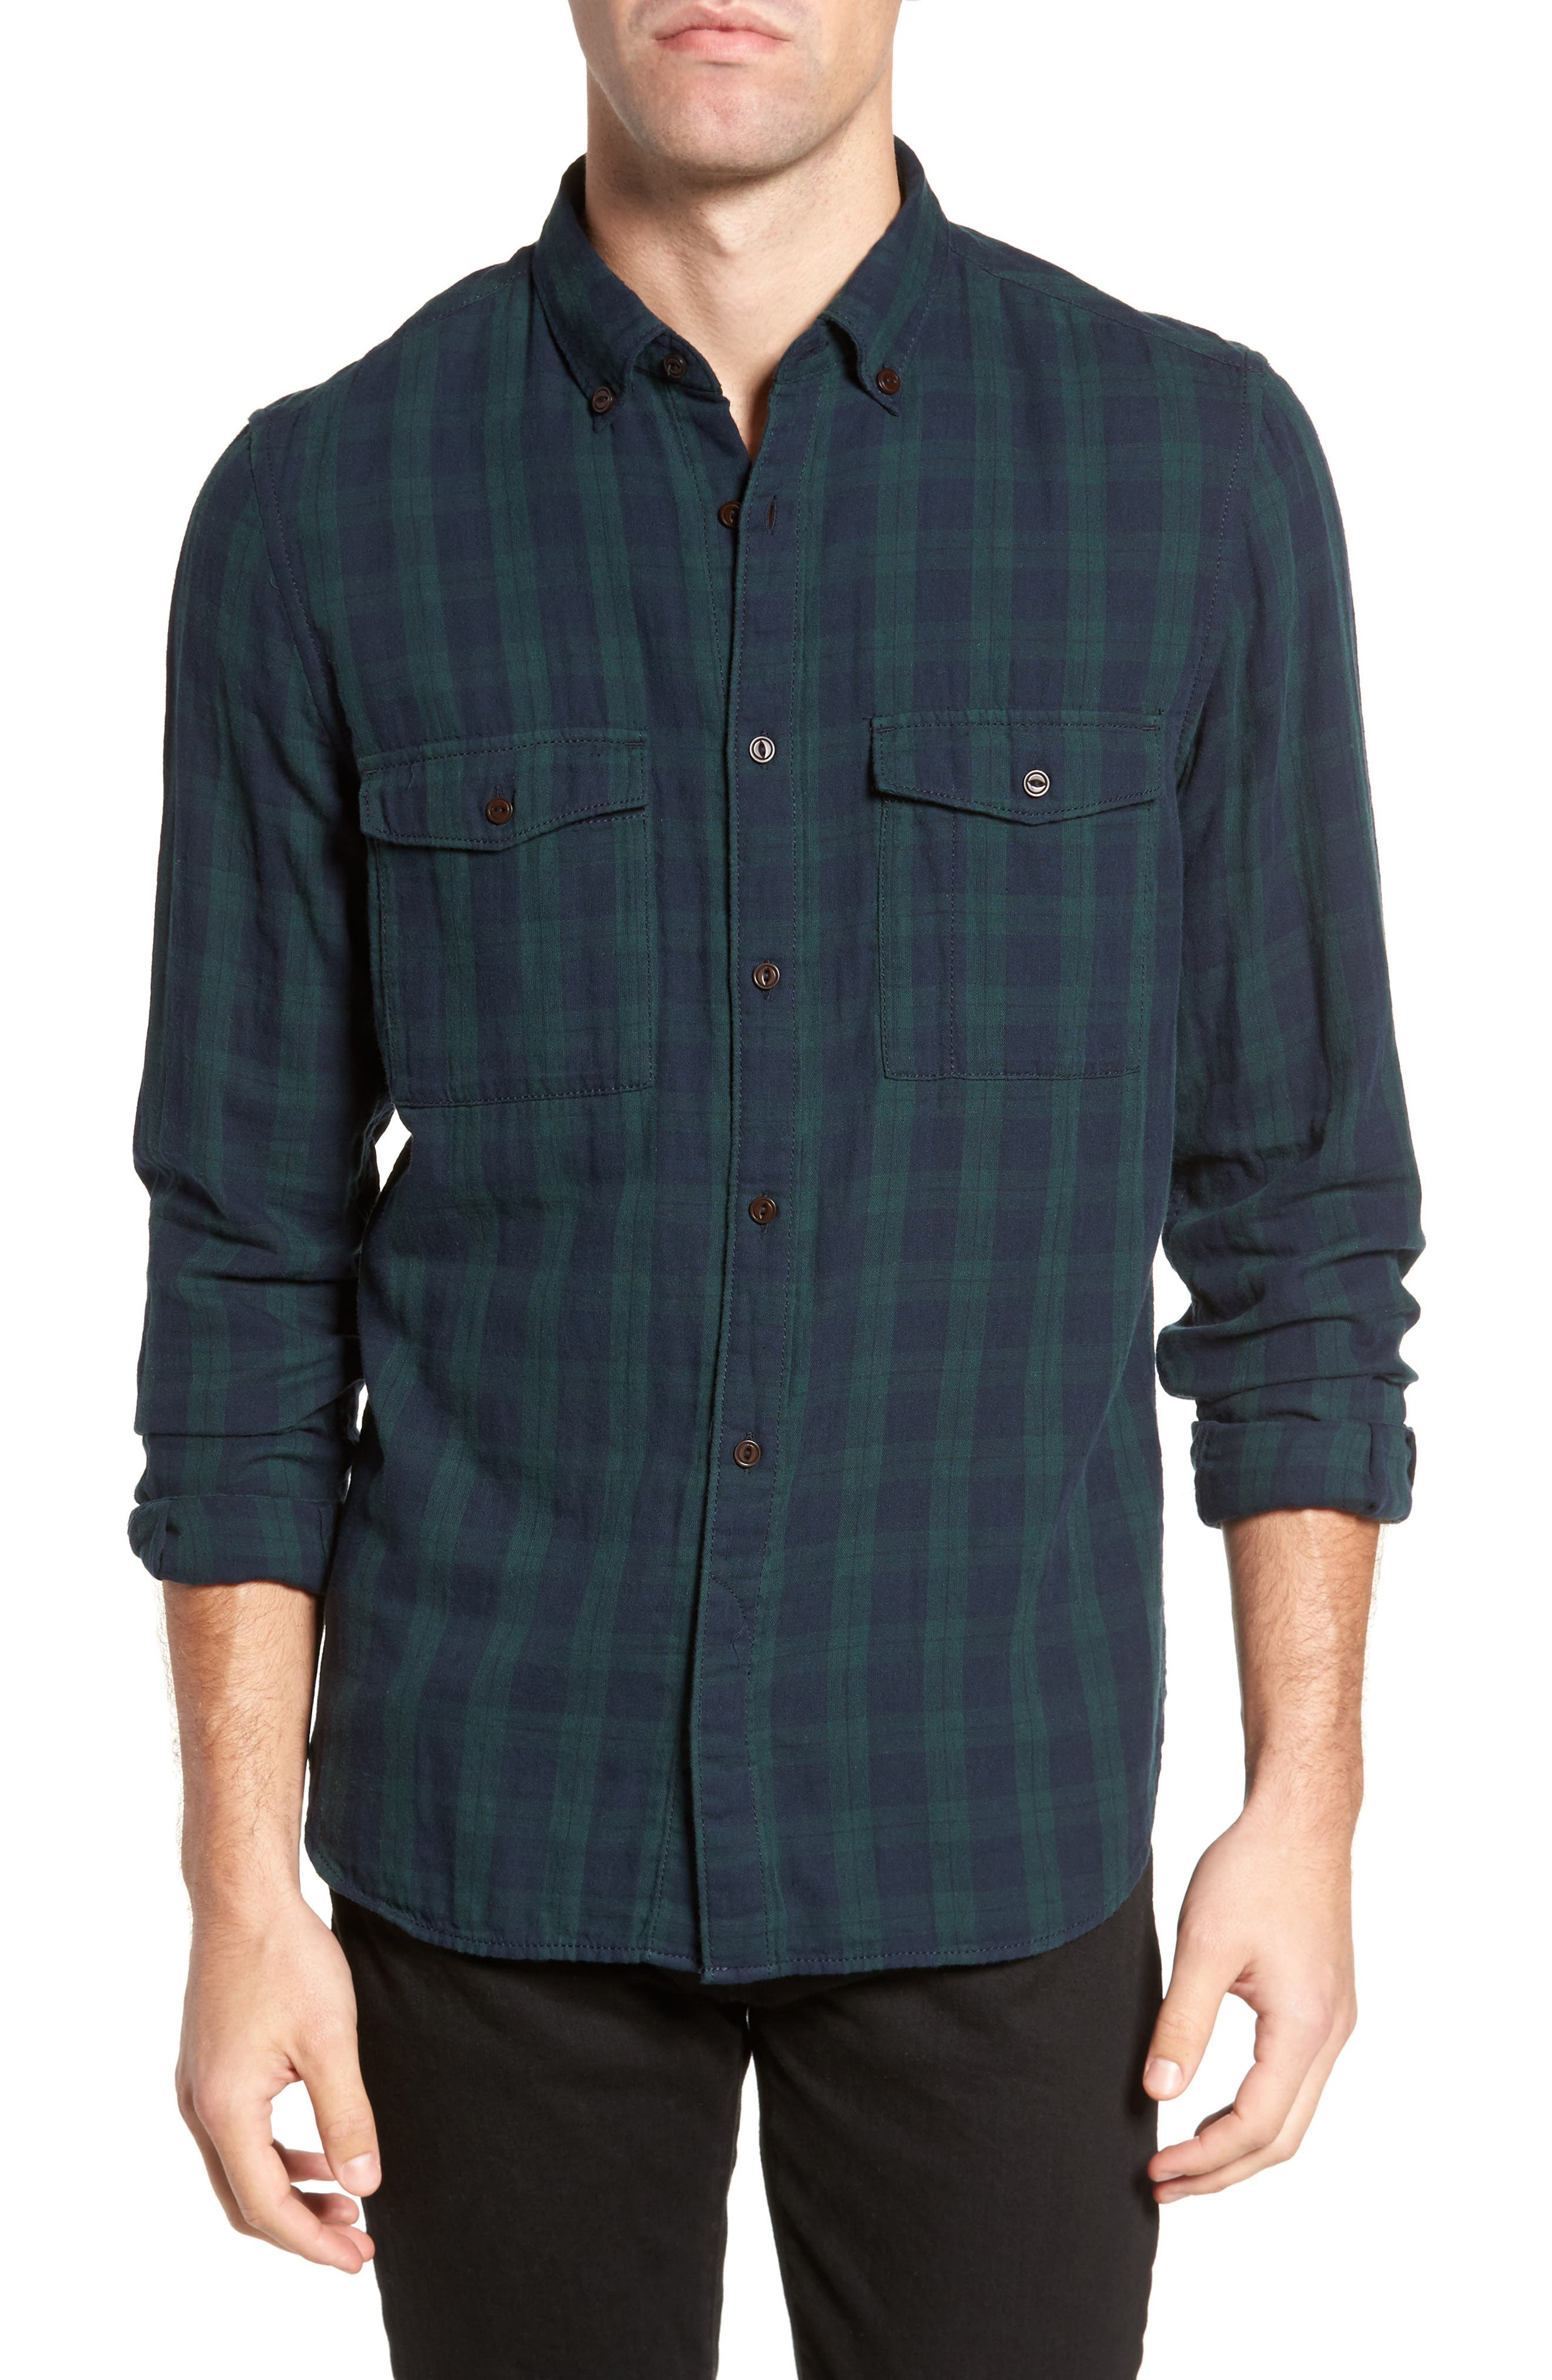 Main Image - French Connection Black Watch Double Check Sport Shirt